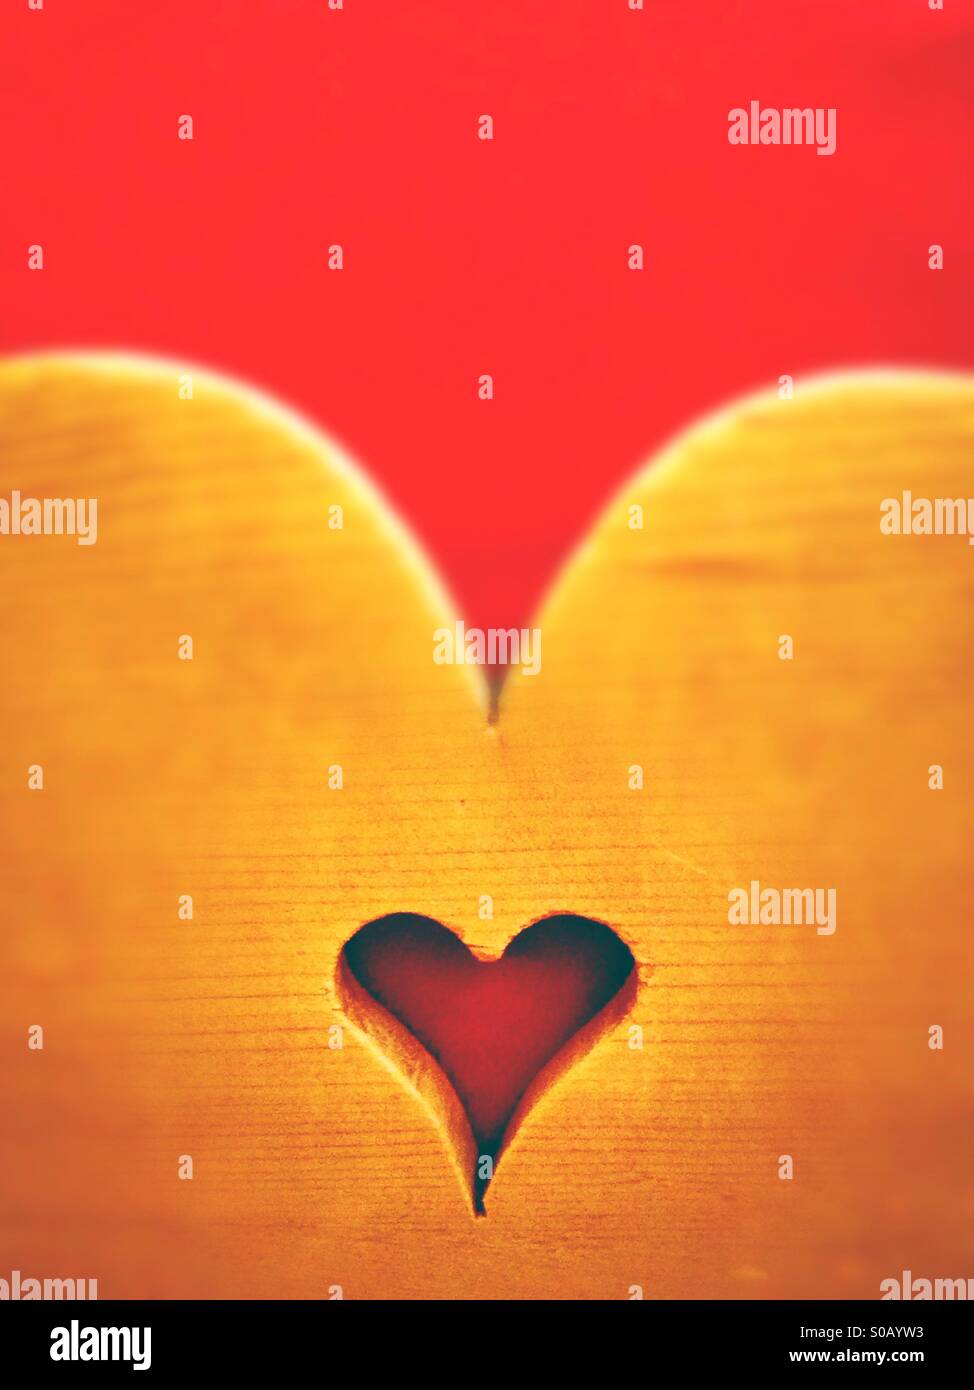 Heart - Stock Image